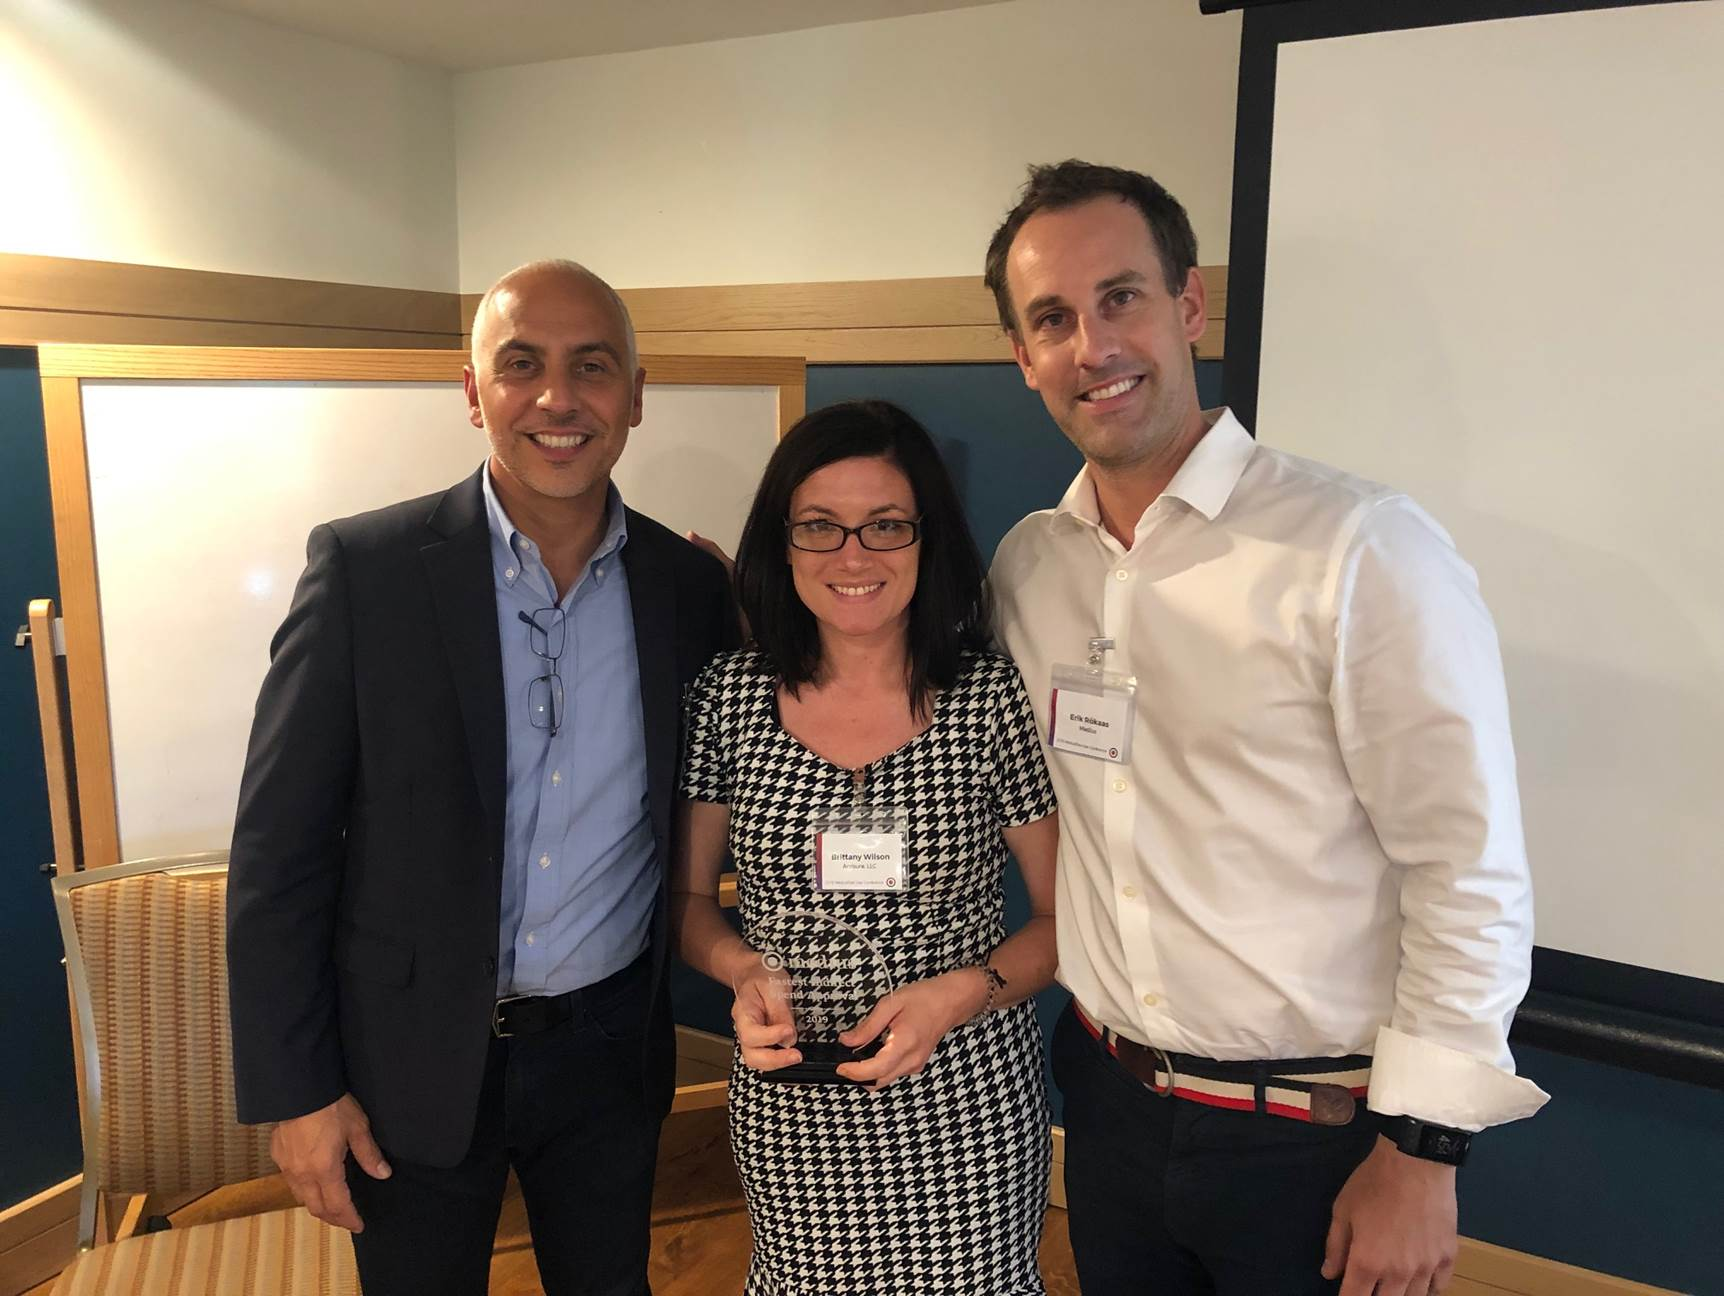 Acrisure mediusflow customer award 2019